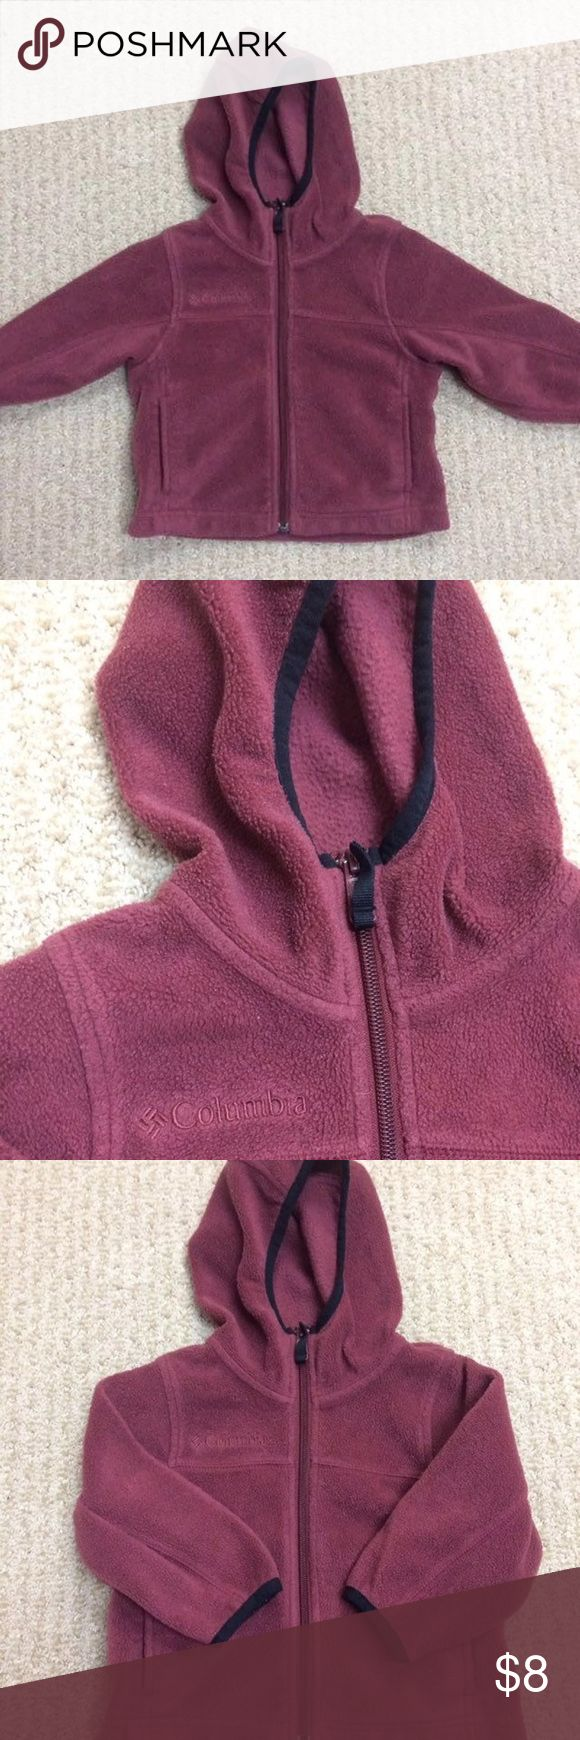 Toddler Columbia Jacket Toddler Columbia fleece jacket. Zips up the front with pockets and a hood. 2t. This is a maroon/ burnt red color. No stains or holes. Perfect for keepingy your child warm. Can work for a boy or girl. Gender neutral coloring. Columbia Shirts & Tops Sweatshirts & Hoodies